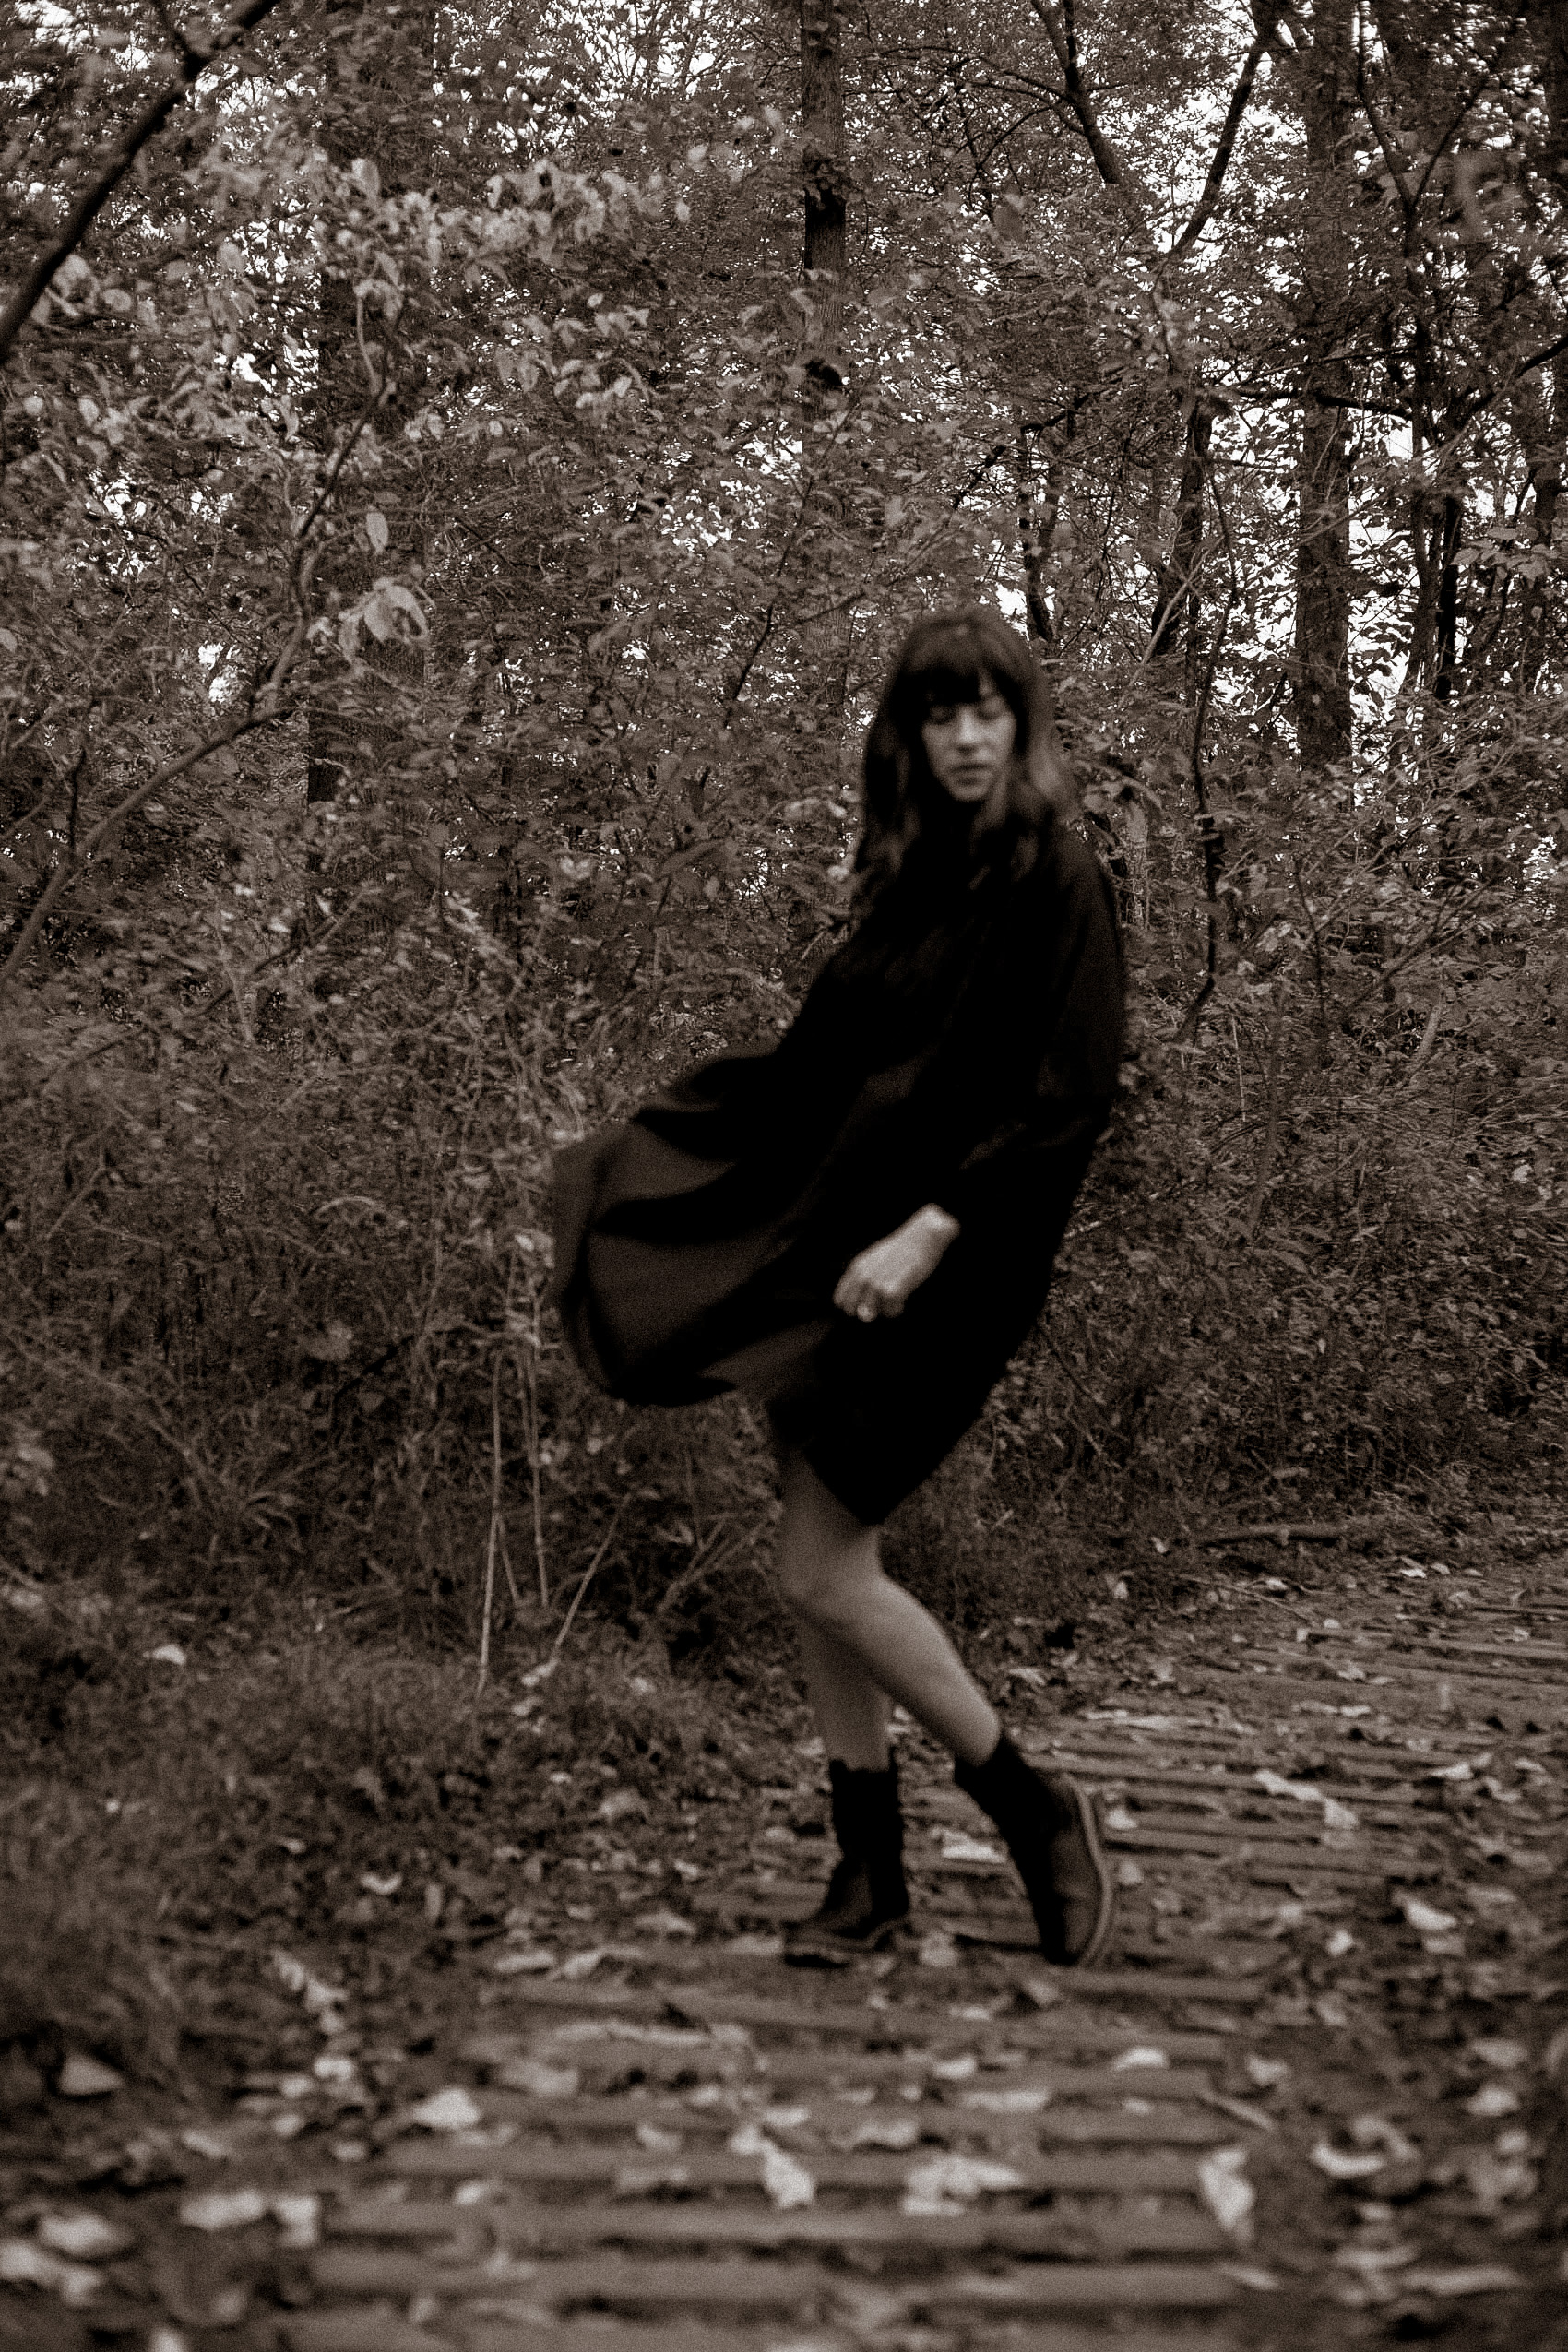 All black fall outfit on woman in woods giving off spooky vibe